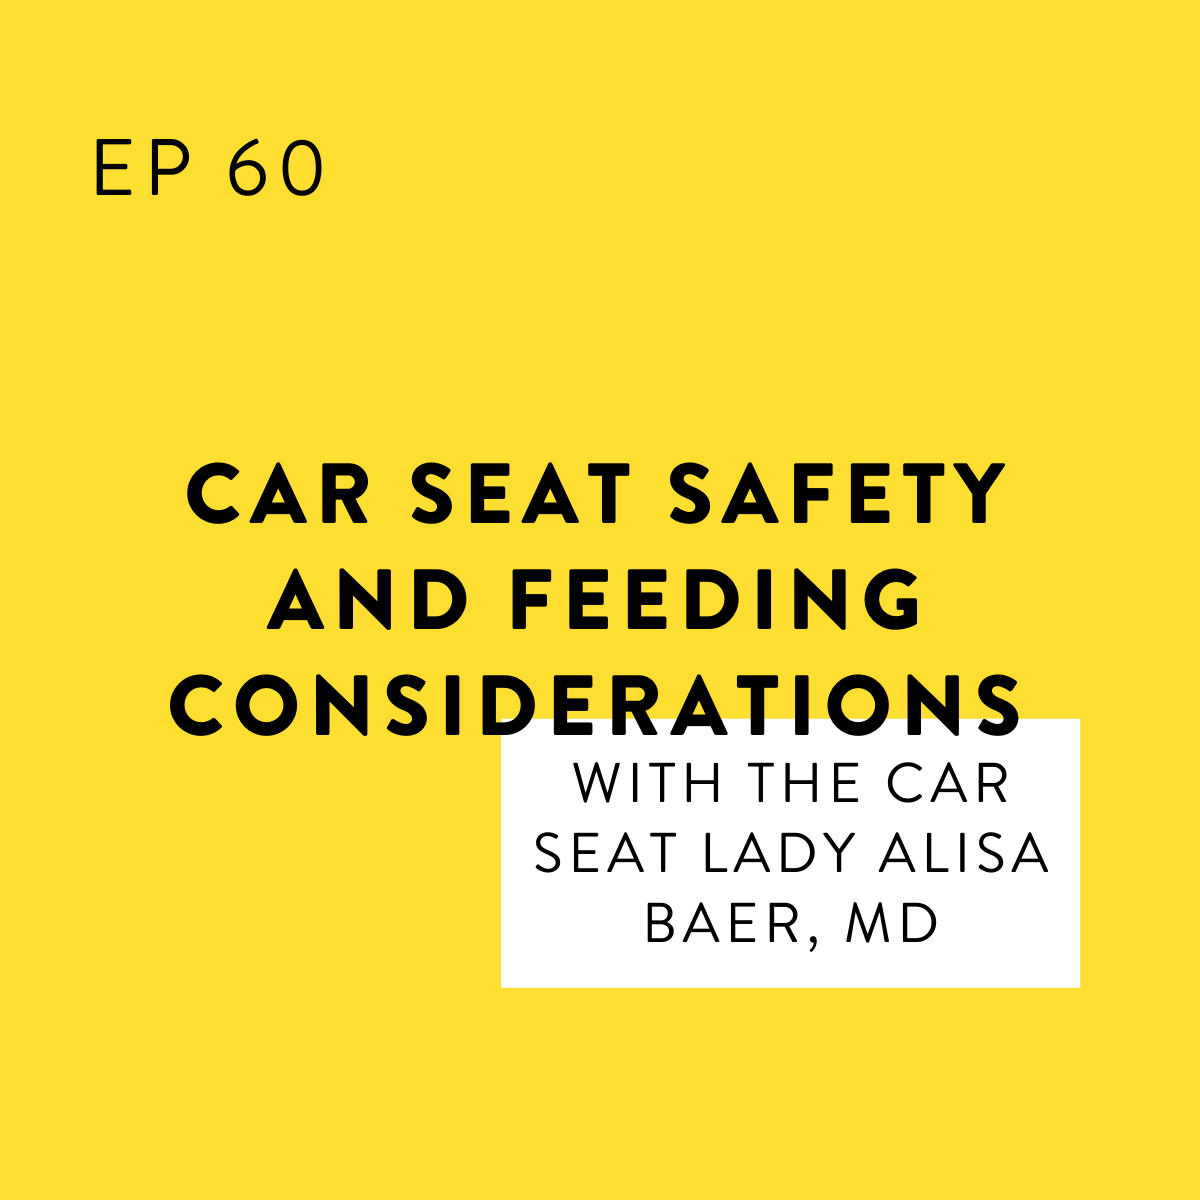 Car Seat Safety and Feeding Considerations with The Car Seat Lady Alisa Baer, MD